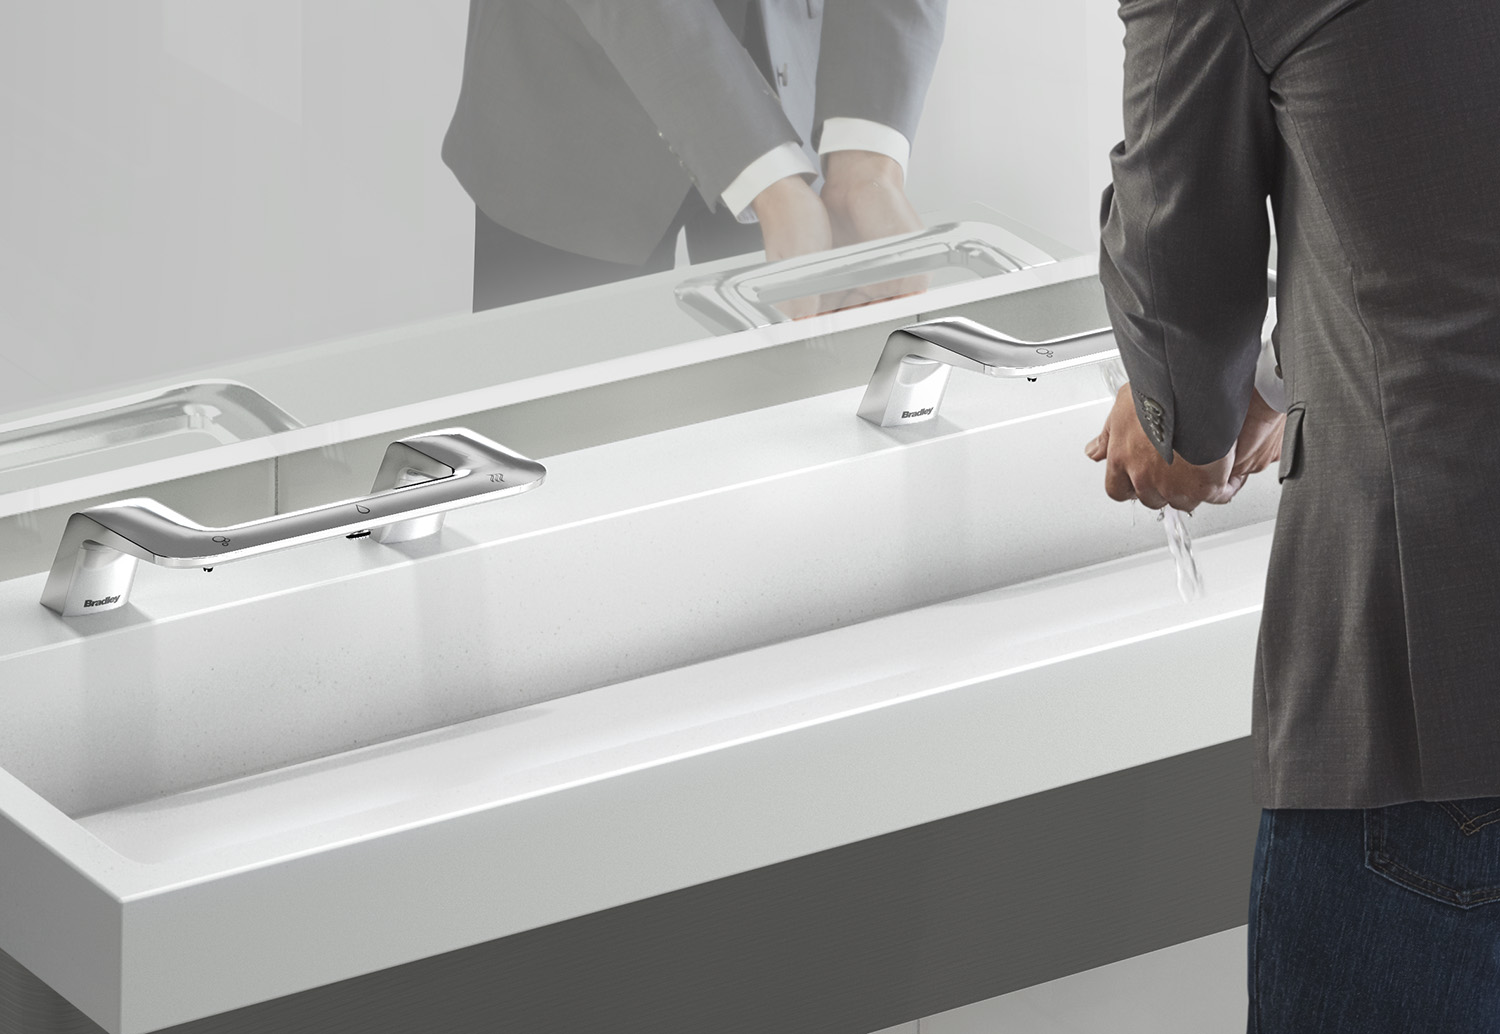 Closeup of sink with touchless faucet system